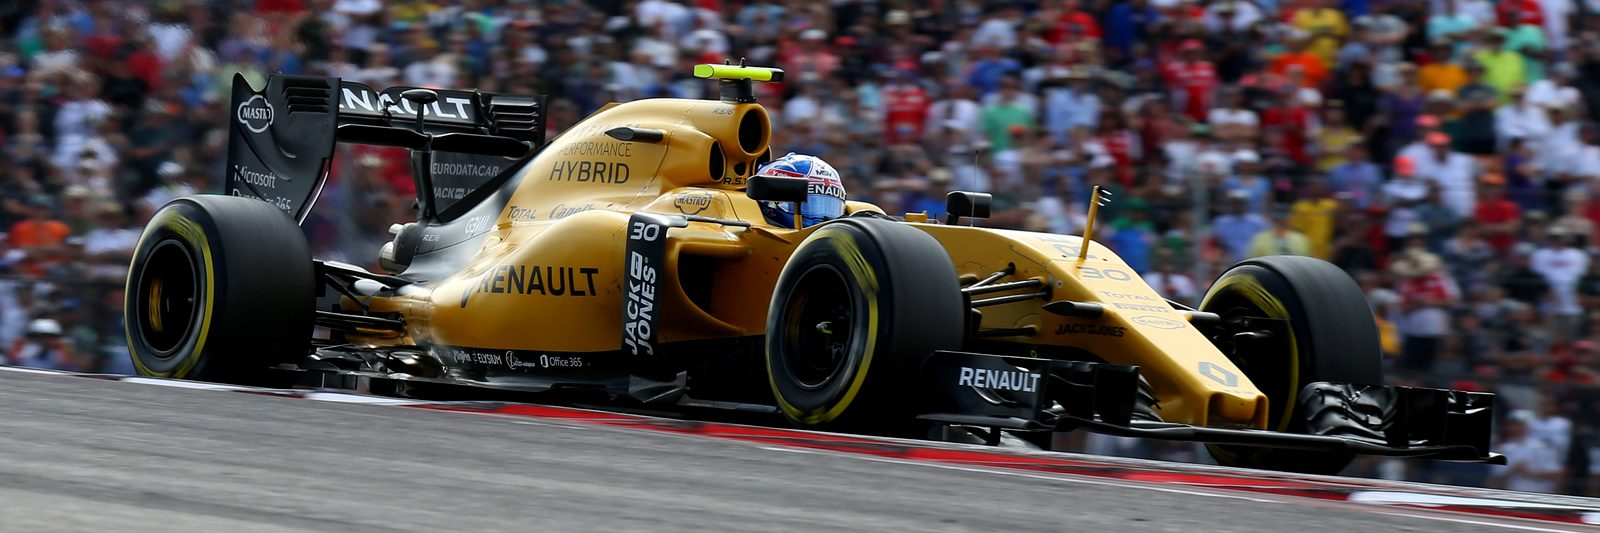 Motorsports: FIA Formula One World Championship 2016, Grand Prix of United States,  #30 Jolyon Palmer (GBR, Renault Sport Formula 1 Team),  *** Local Caption *** +++ www.hoch-zwei.net +++ copyright: HOCH ZWEI +++